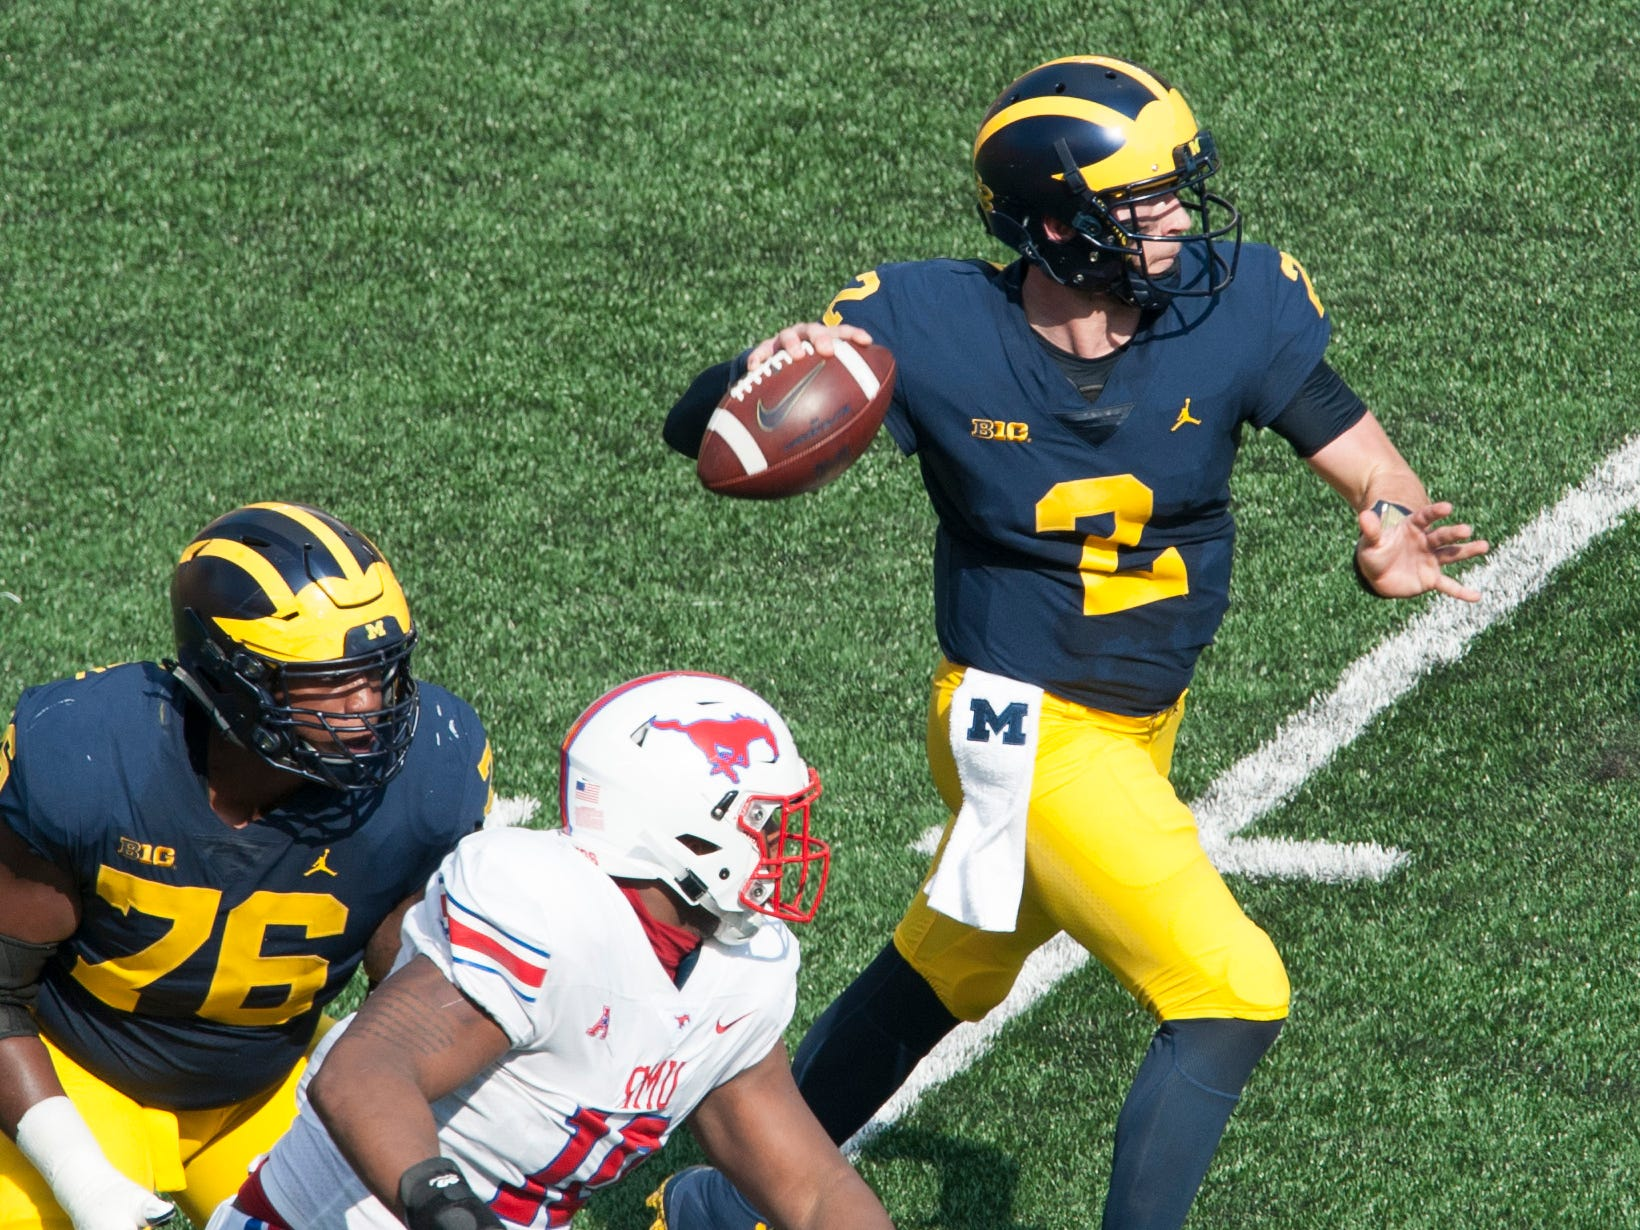 Michigan quarterback Shea Patterson rolls out to throw in the first quarter.